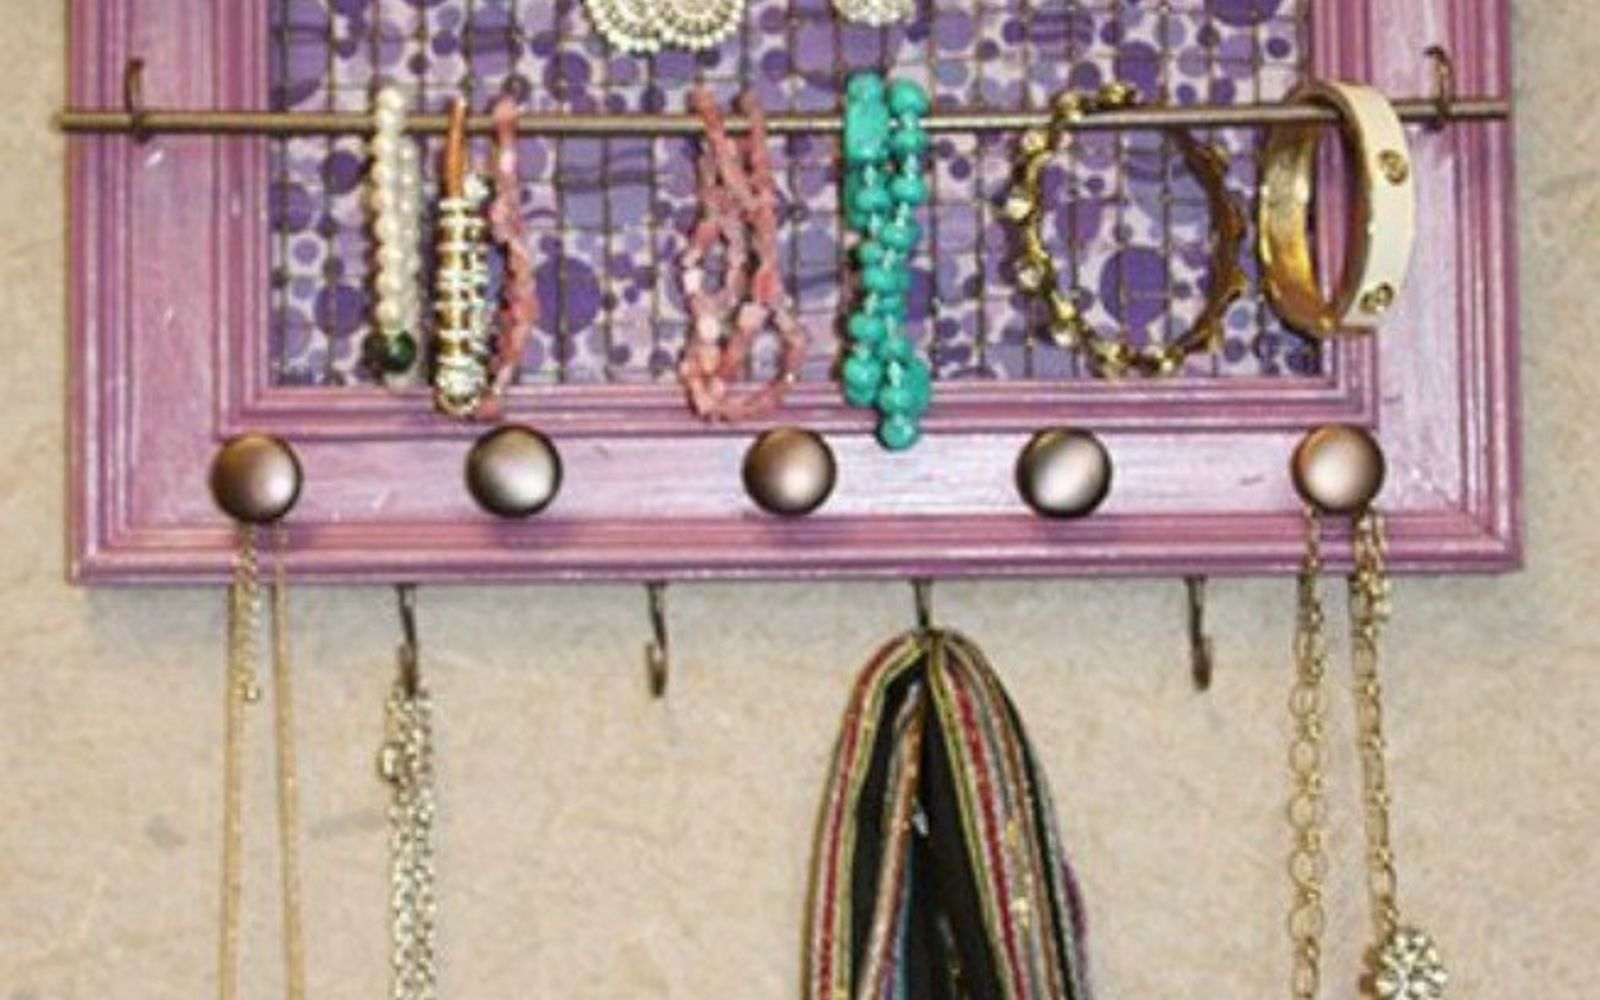 s 21 jewelry organizing ideas that are better than a jewelry box, organizing, This painted frame with chicken wire